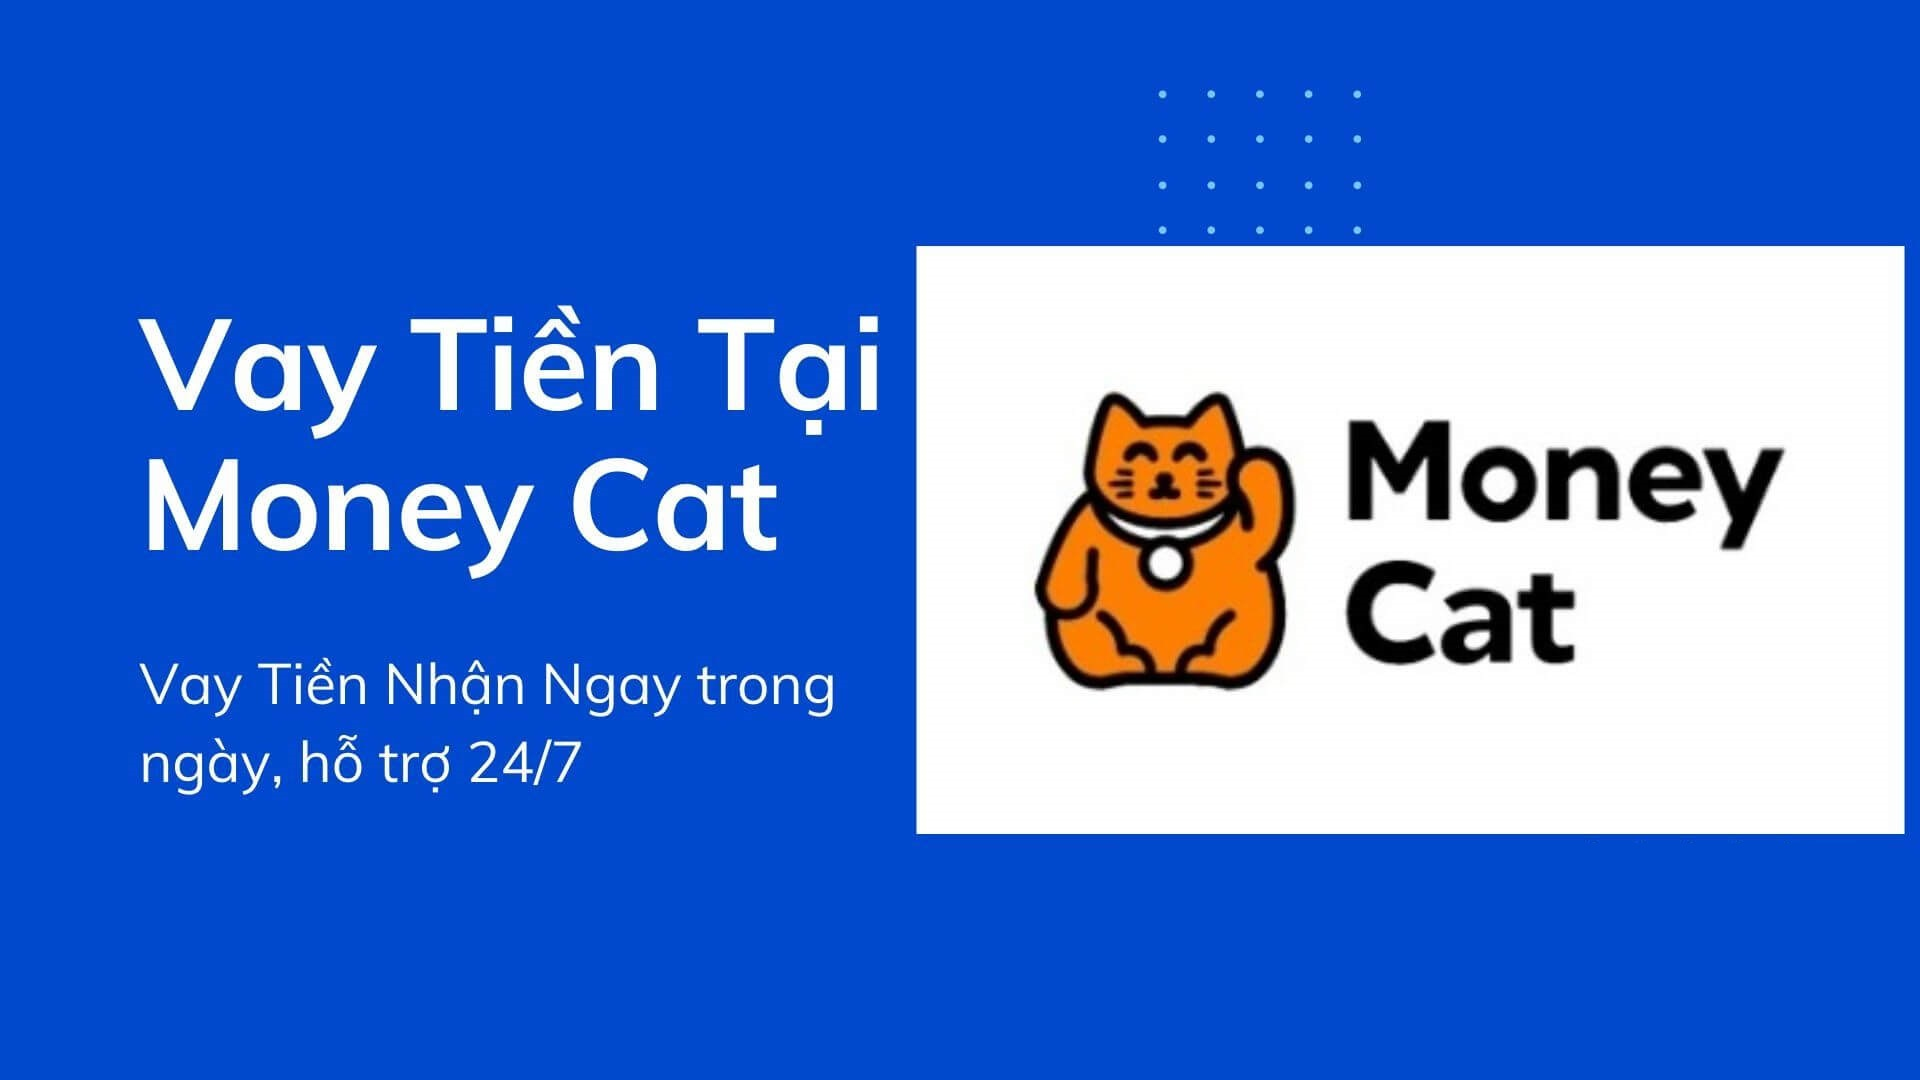 vay tien money cat